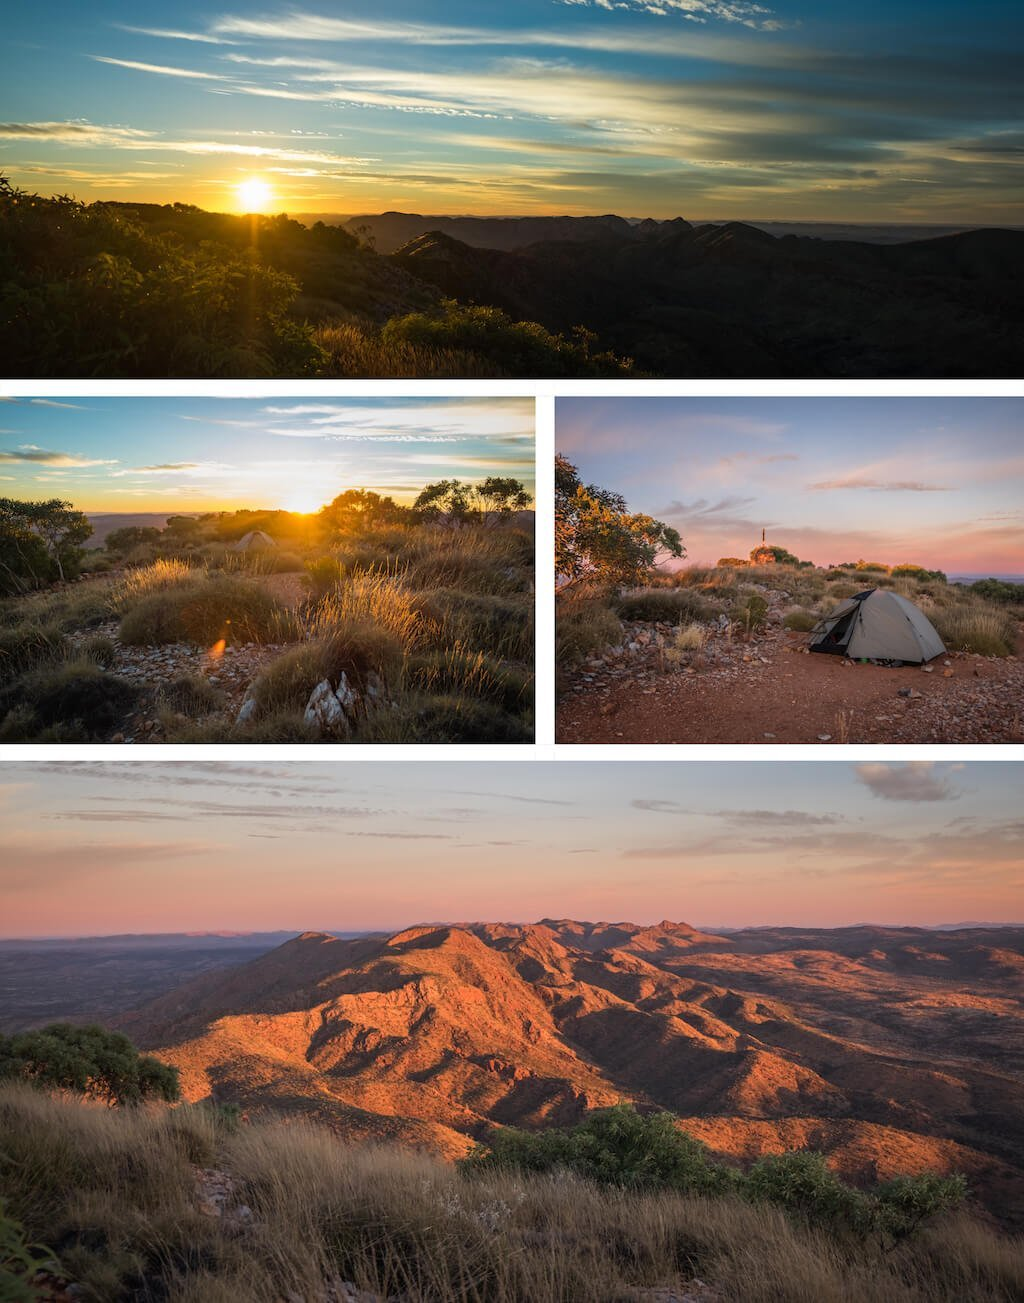 Sunset on Brinkly Bluff - Beautiful photography taken while trekking the Larapinta Trail in Central Australia